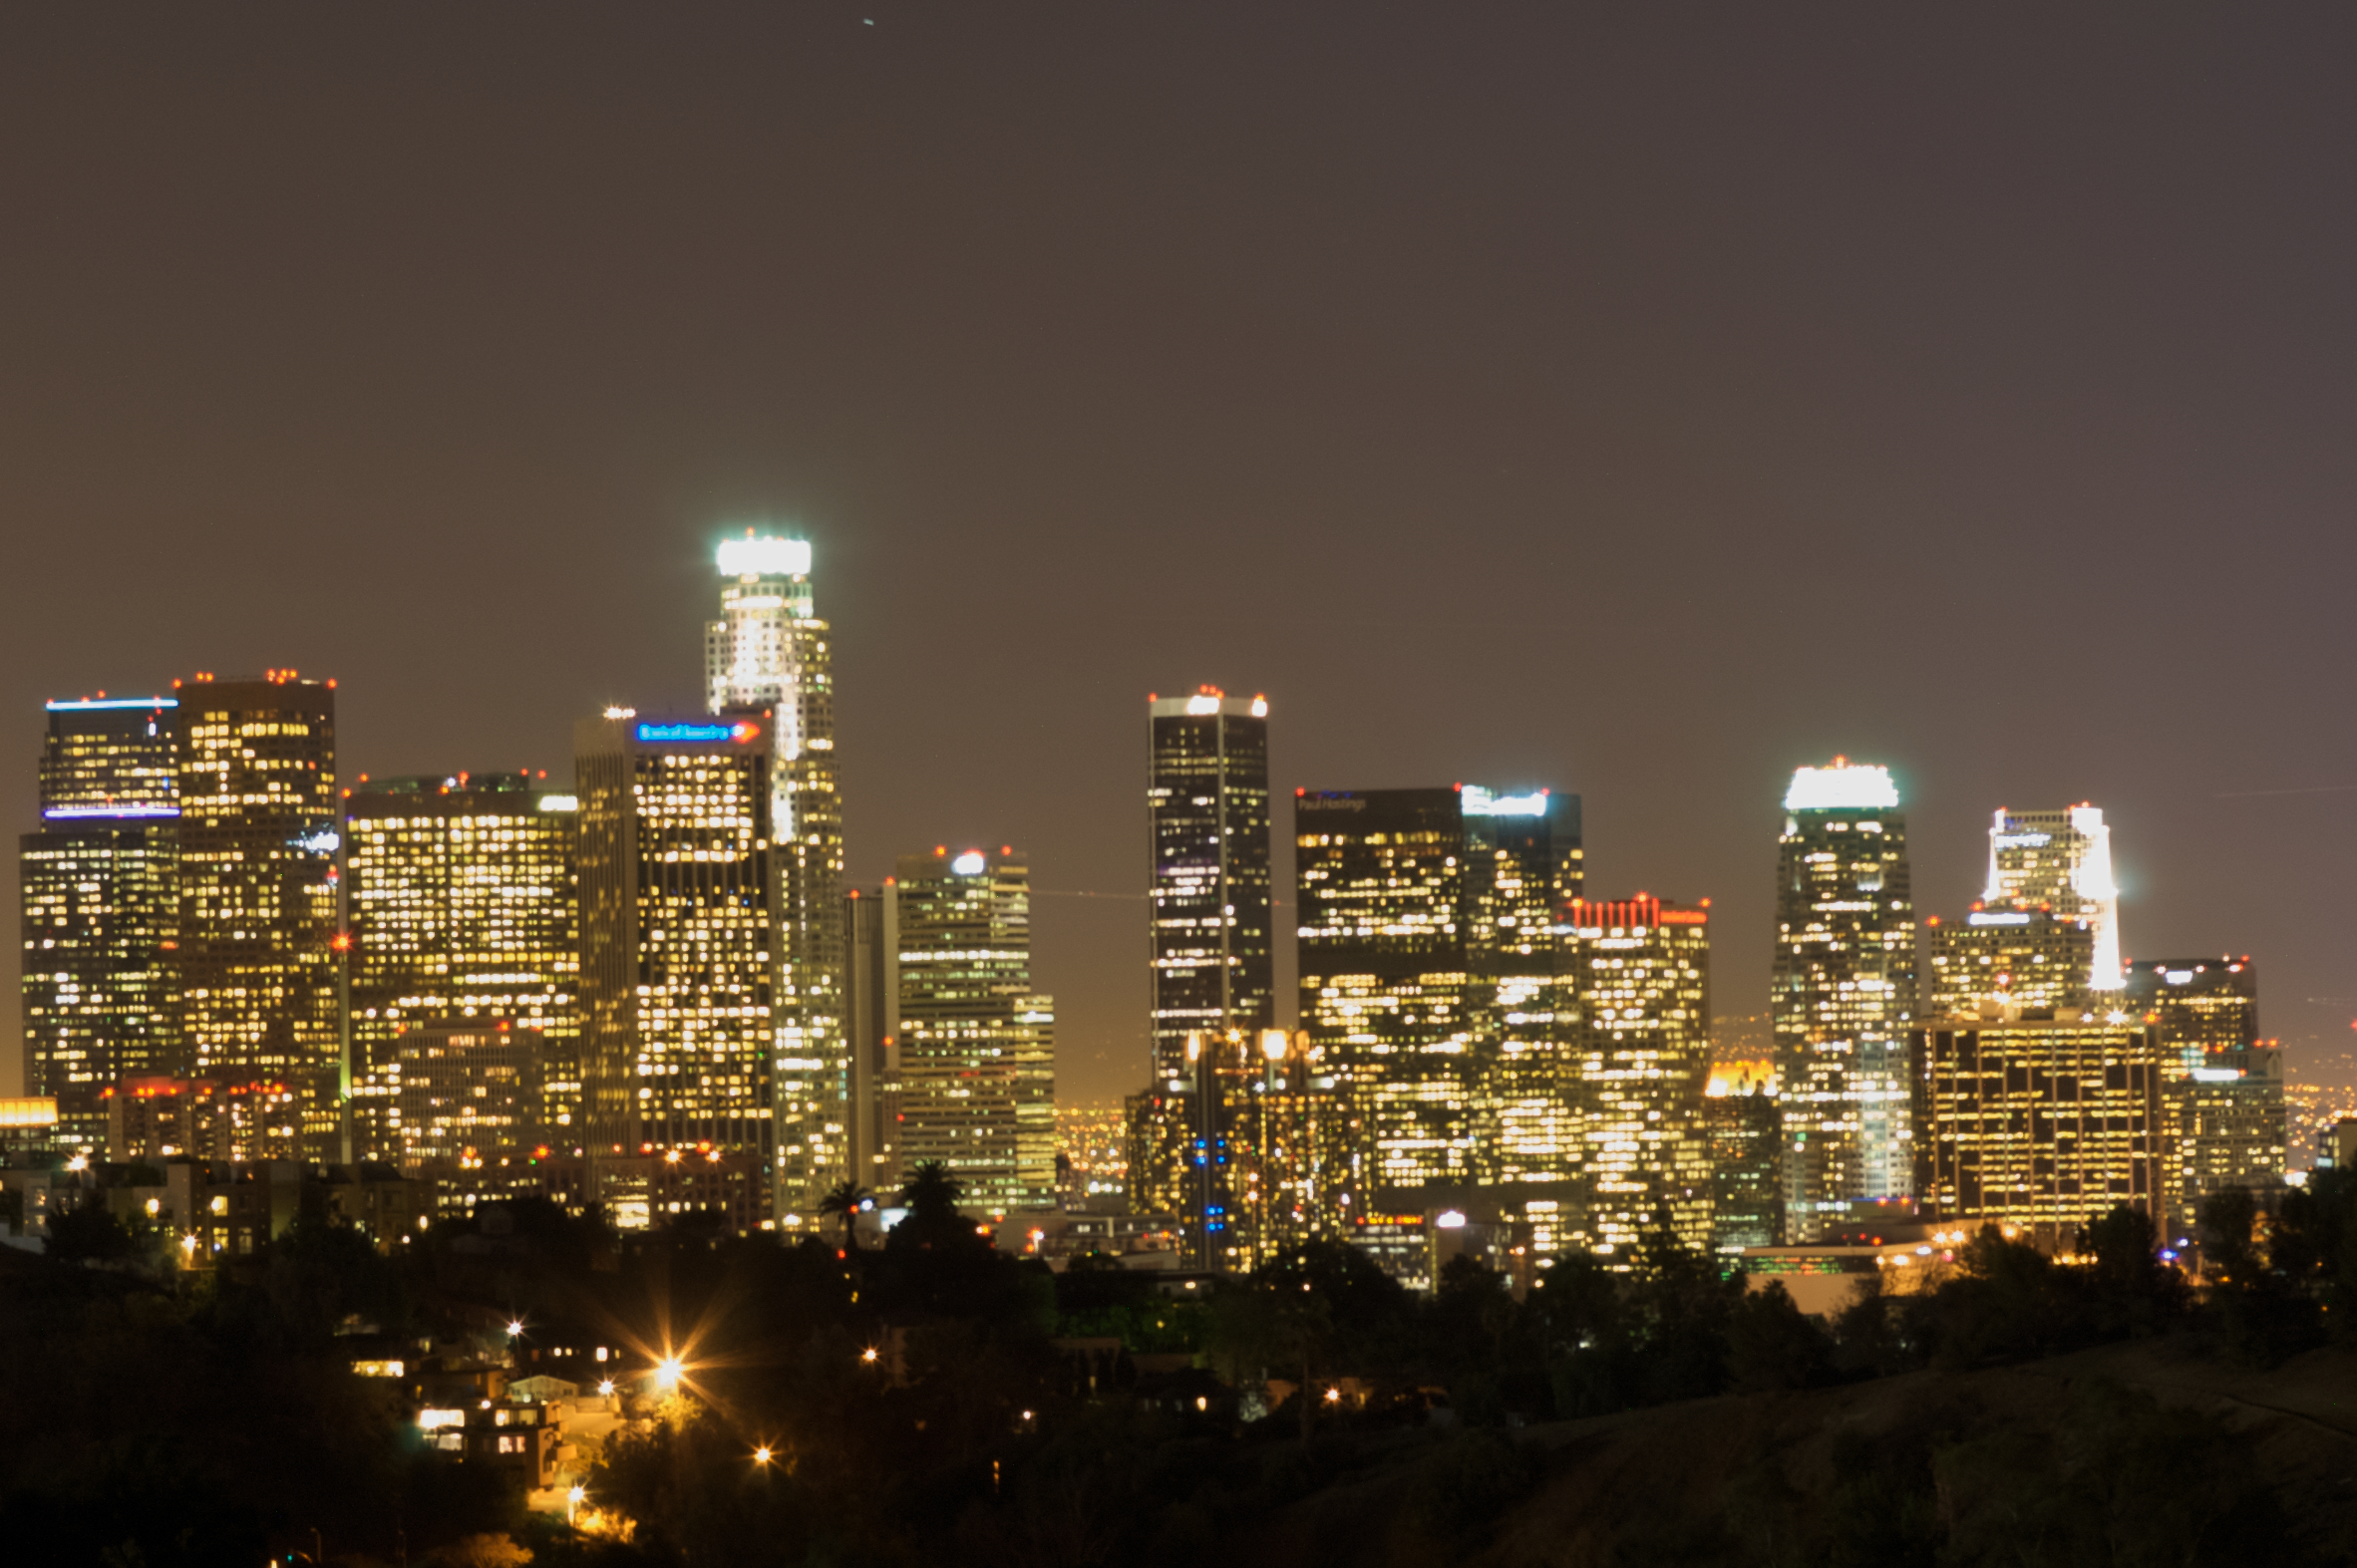 http://upload.wikimedia.org/wikipedia/commons/c/c9/Los_Angeles_Skyline_at_Night.jpg